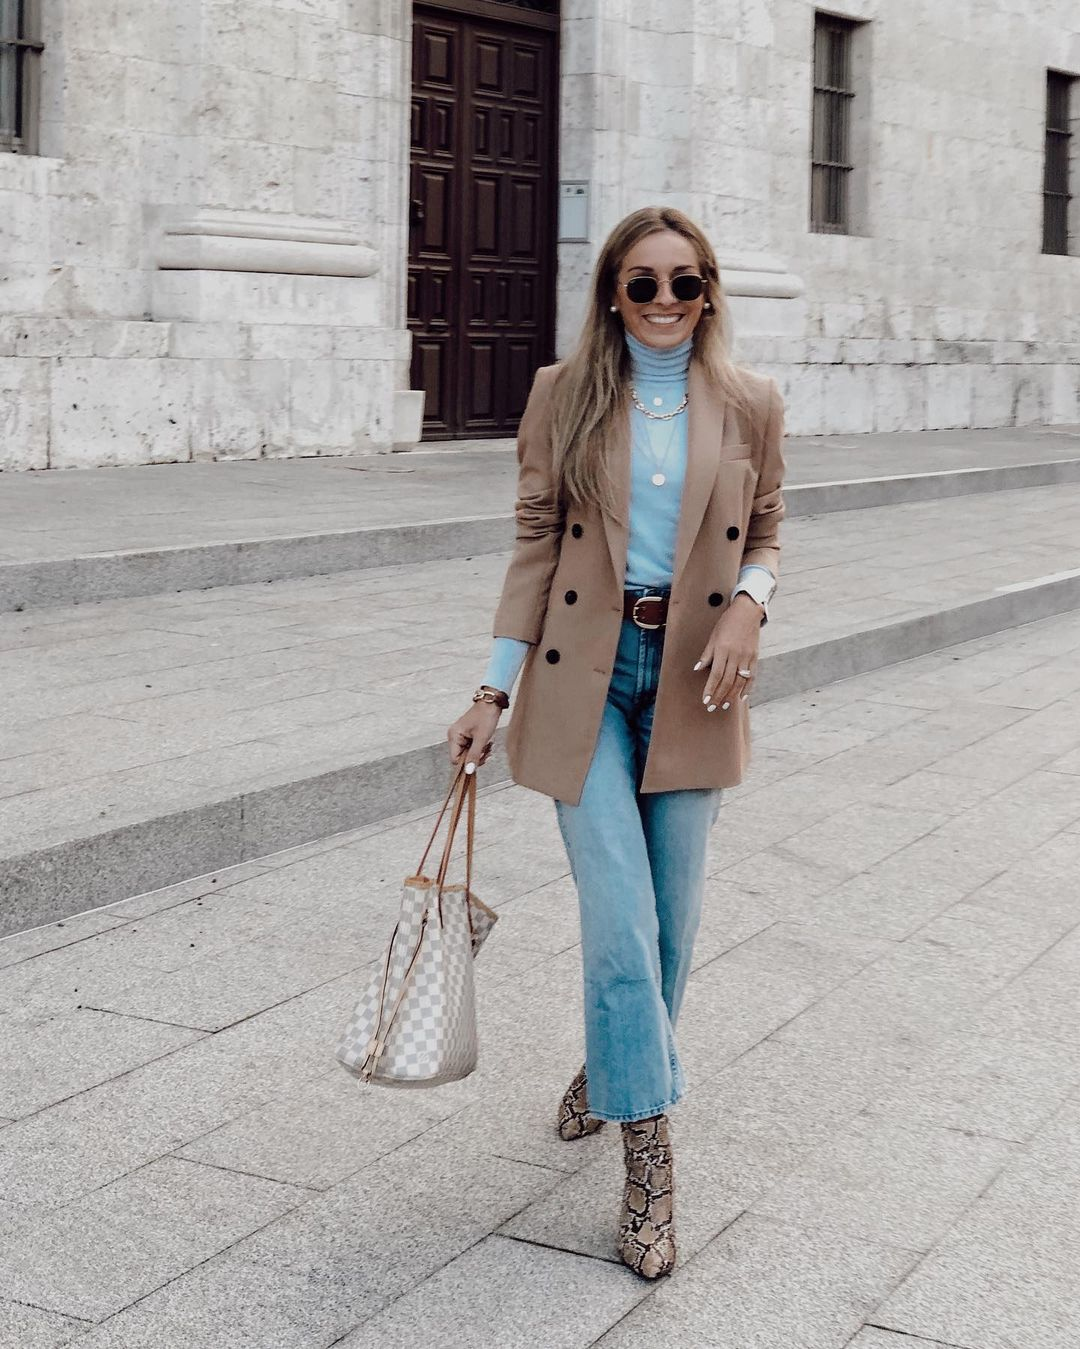 This Outfit Is Ready to Wear Anywhere —@virginiardgcasado Instagram look light blue turtleneck, tan blazer, wide-leg crop jeans, and snakeskin boots